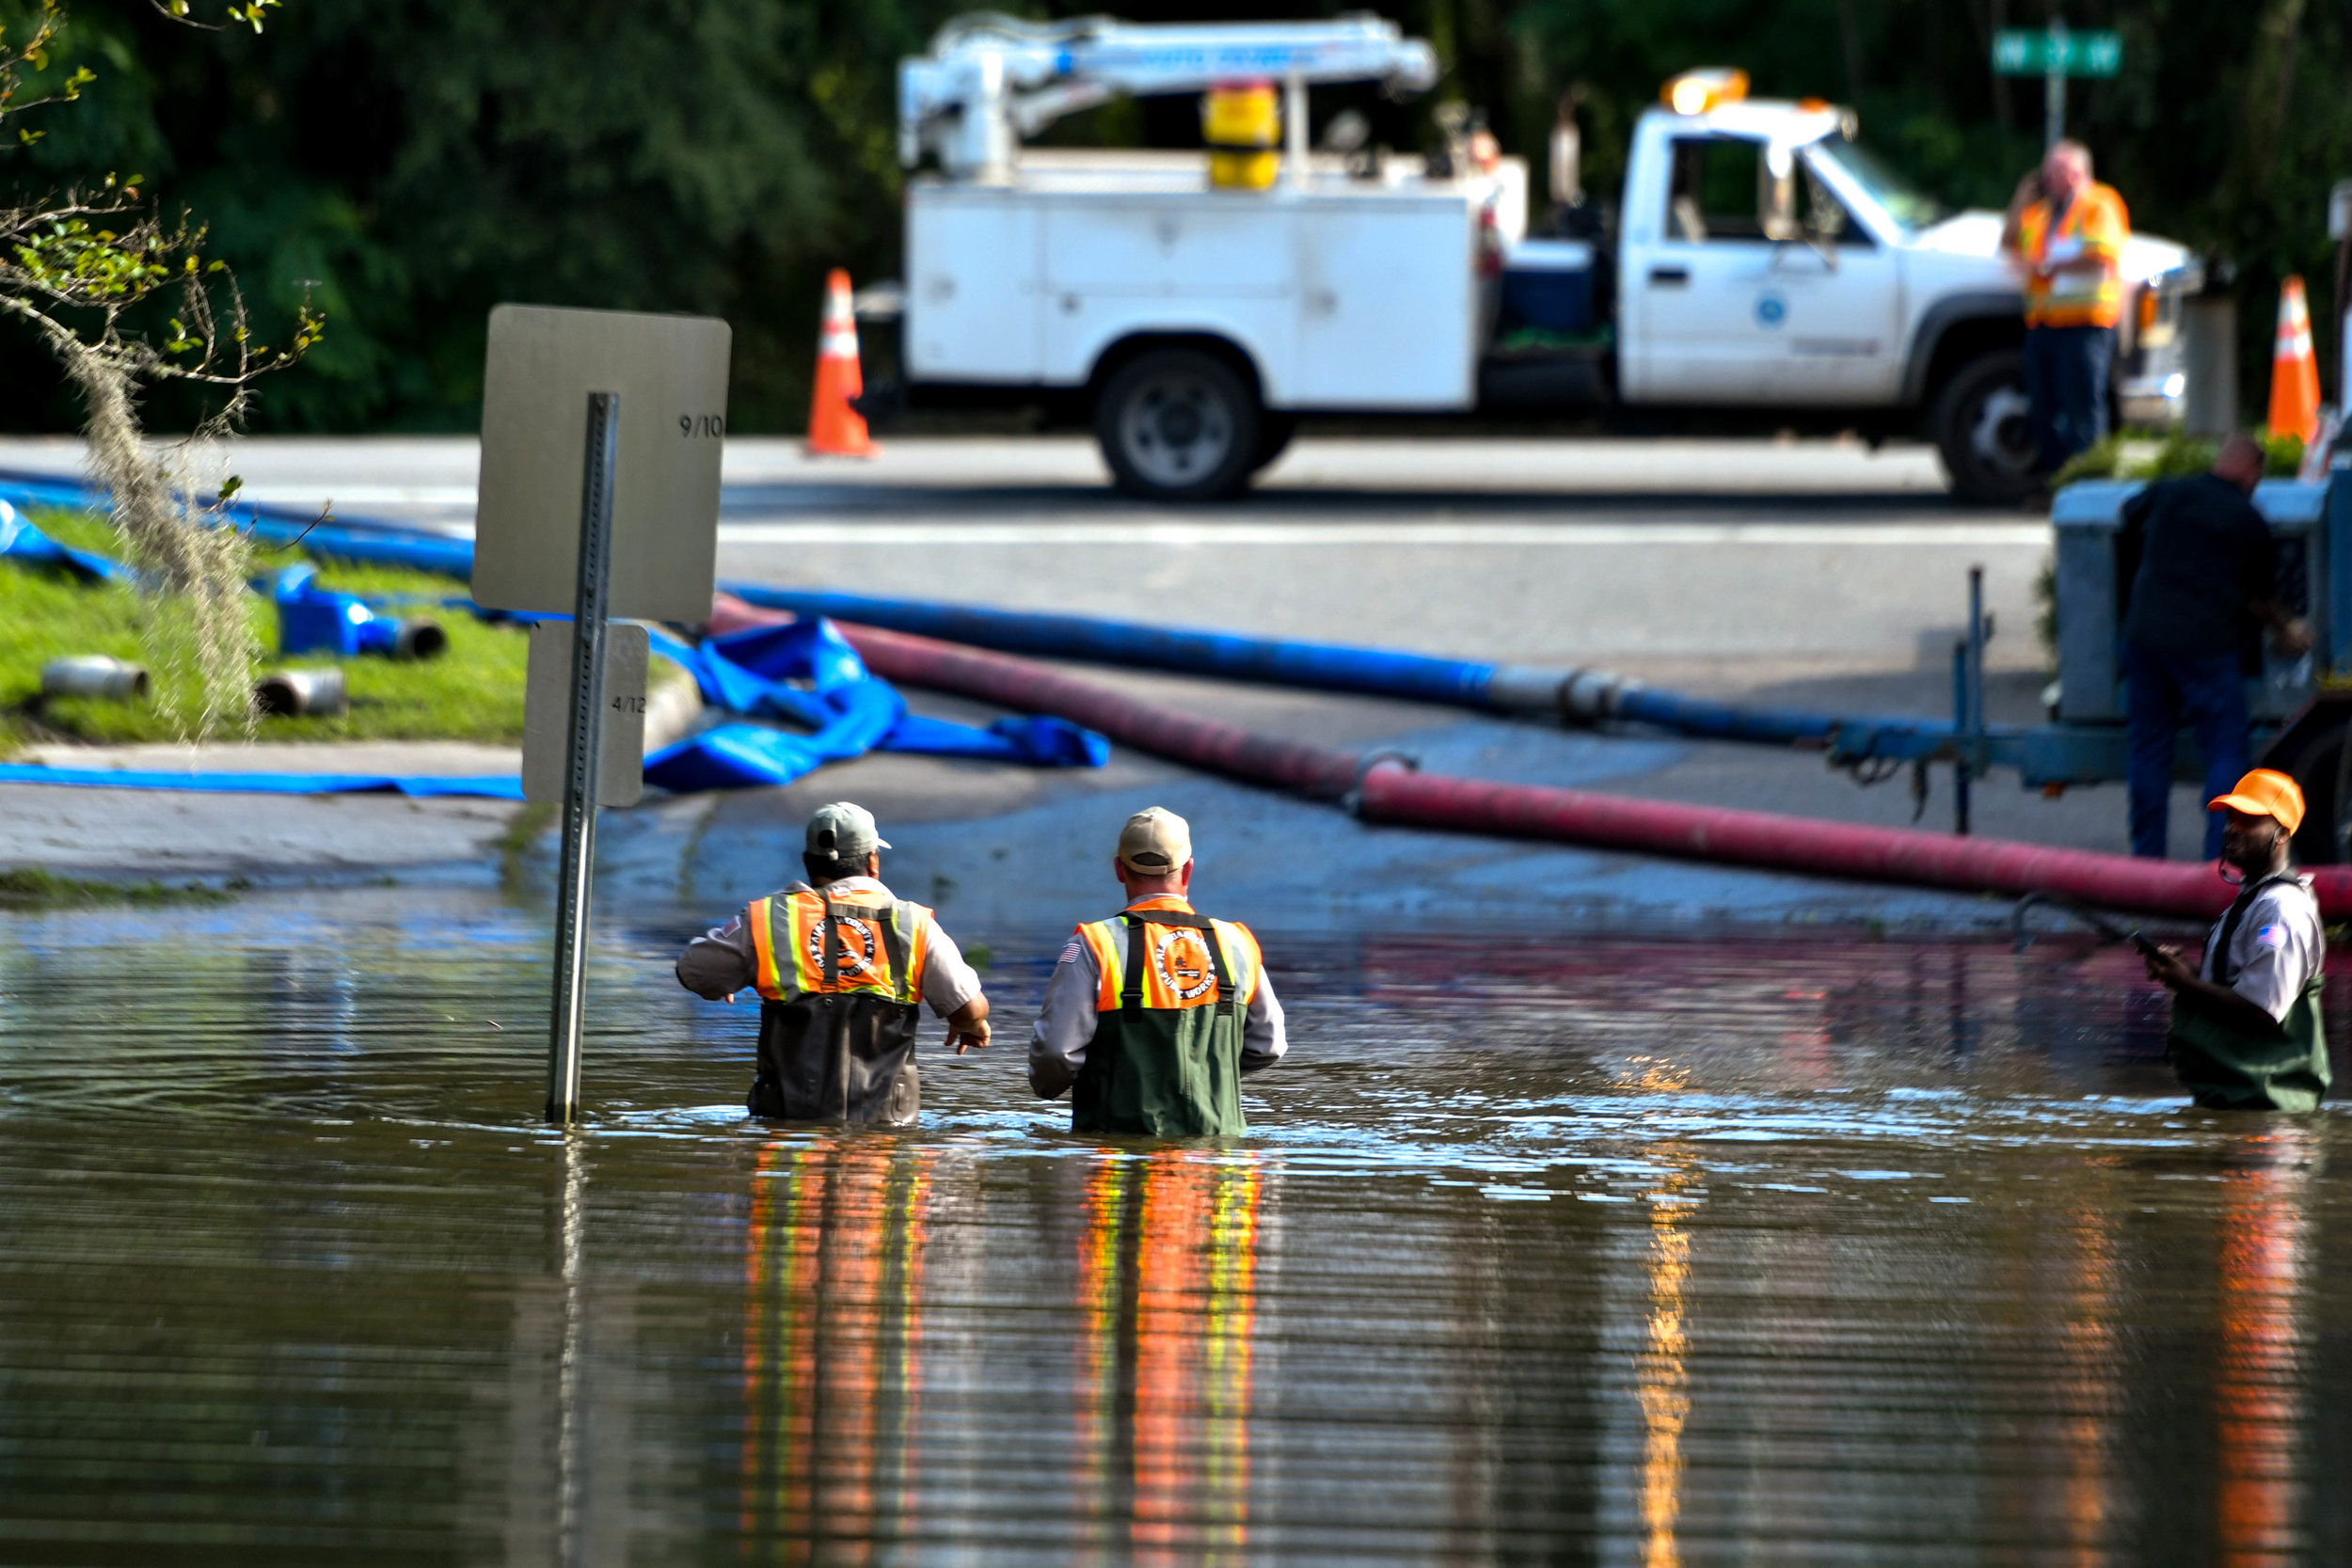 Workers walk out of the excess stormwater at the entrance of the Robin Lane Neighborhood. It took more than two days to make the road accessible. (Grace King / WUFT News)